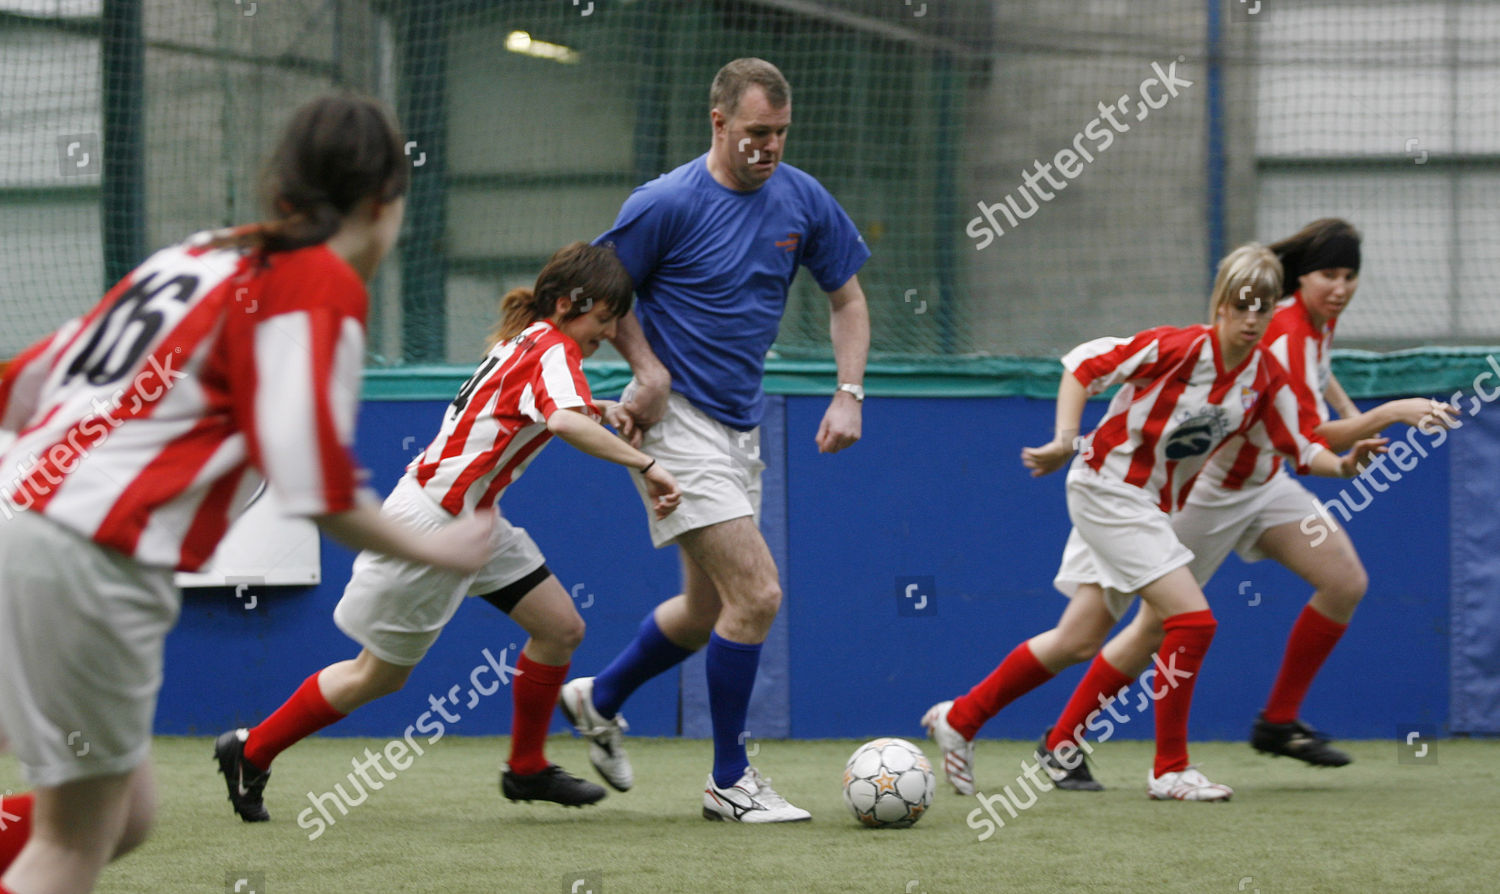 Former Manchester United player Gary Pallister plays